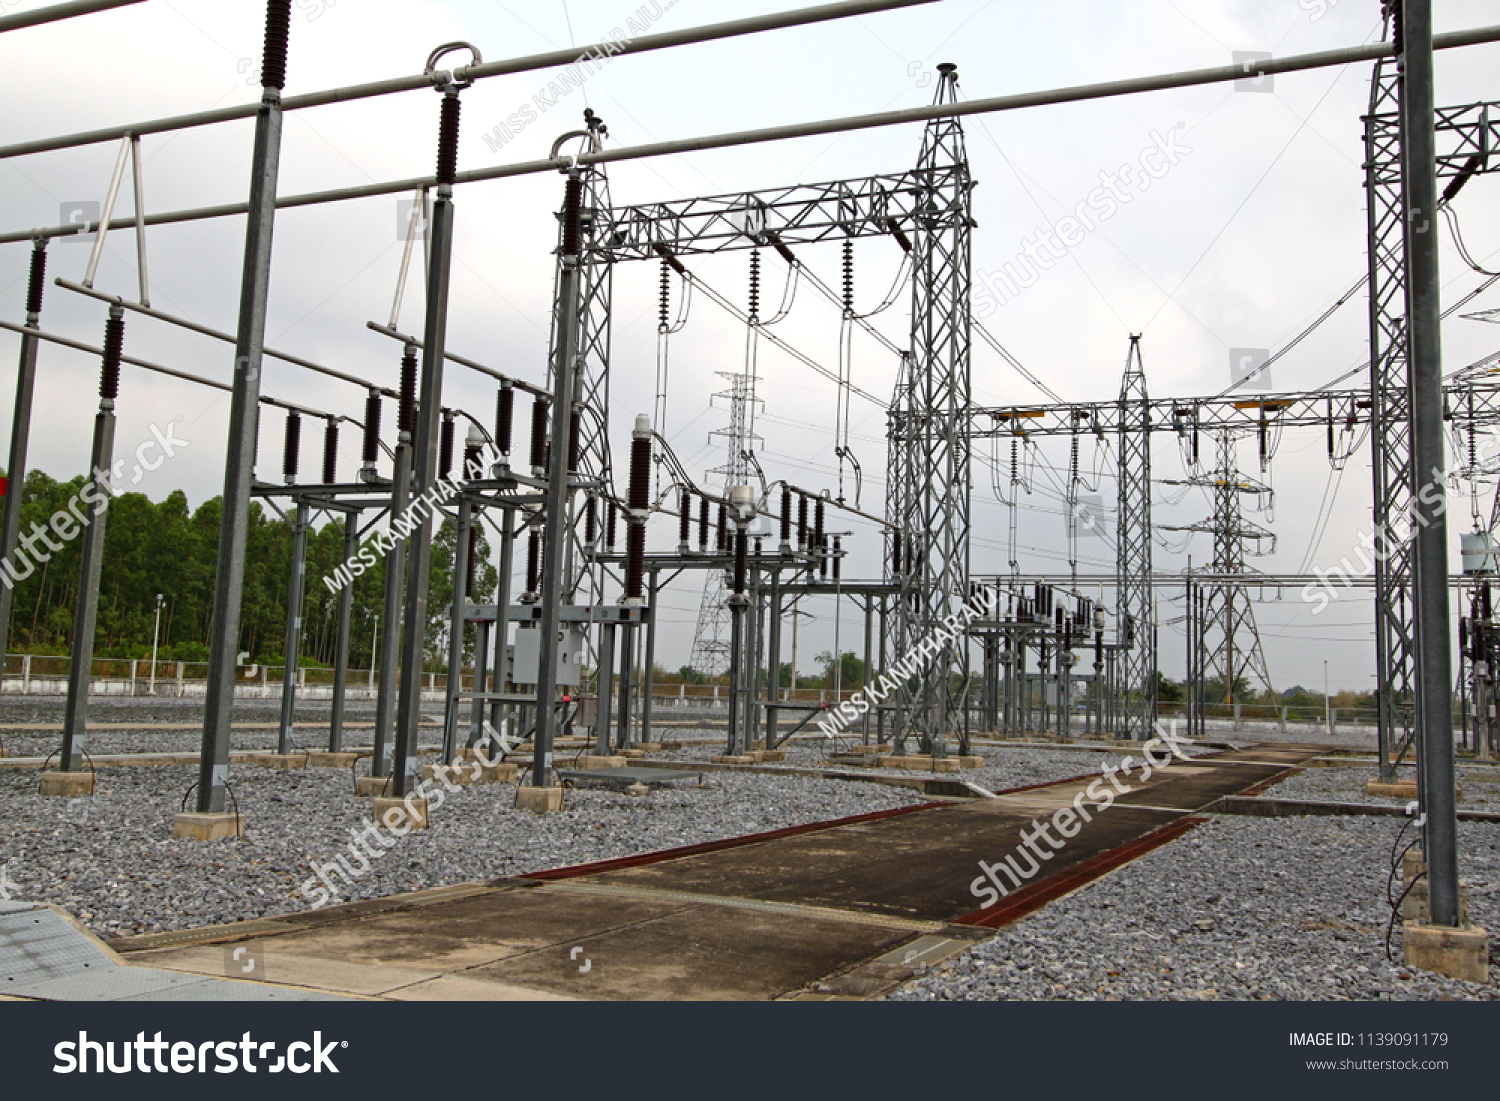 Electrical Insulation Switches Power Plant Stock Photo (Royalty Free ...